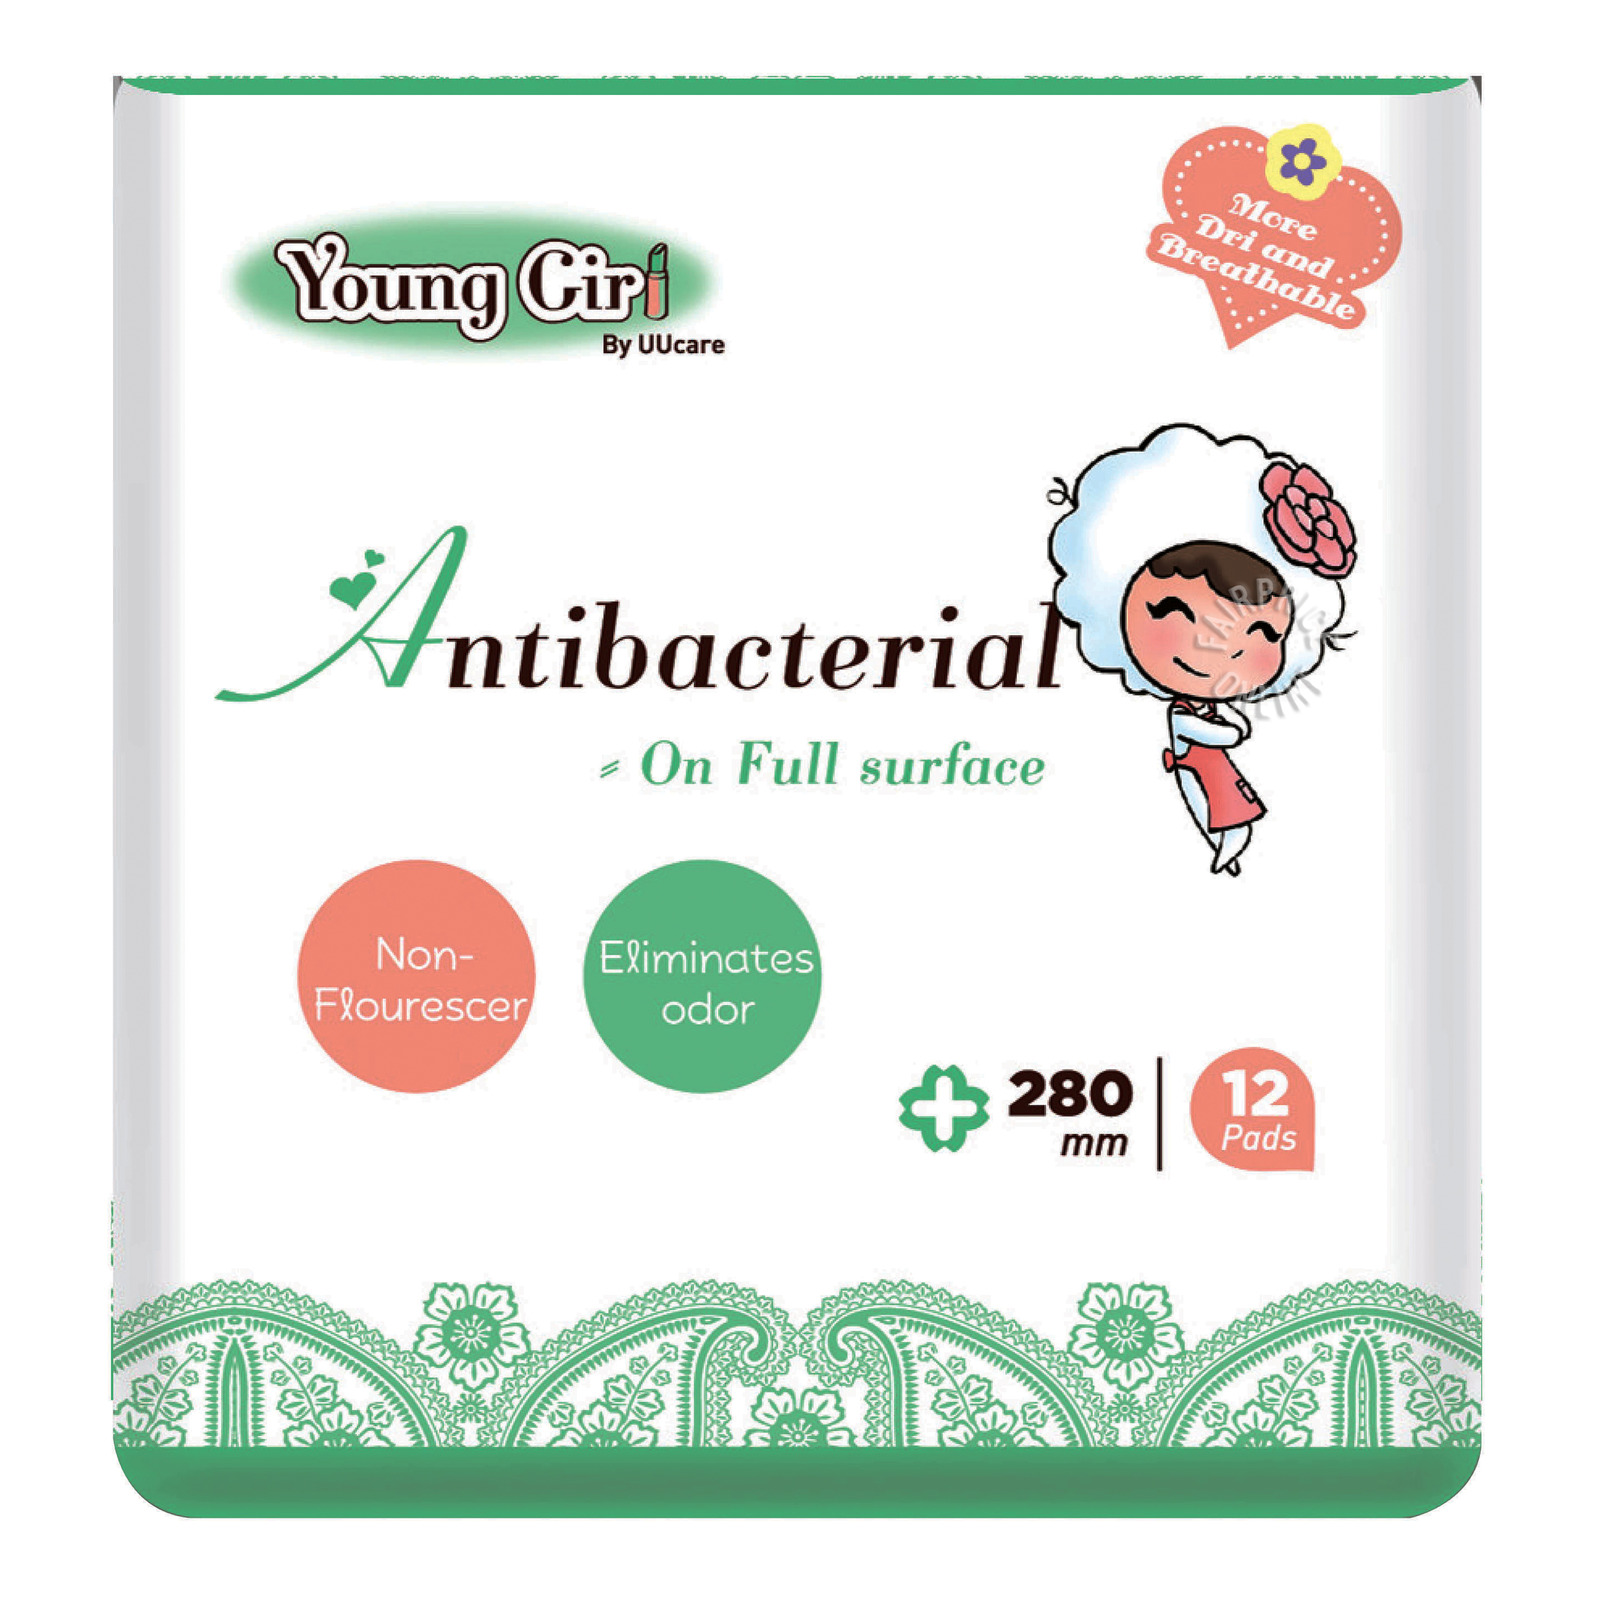 UU Care Young Girl Antibacterial Pads - 280mm